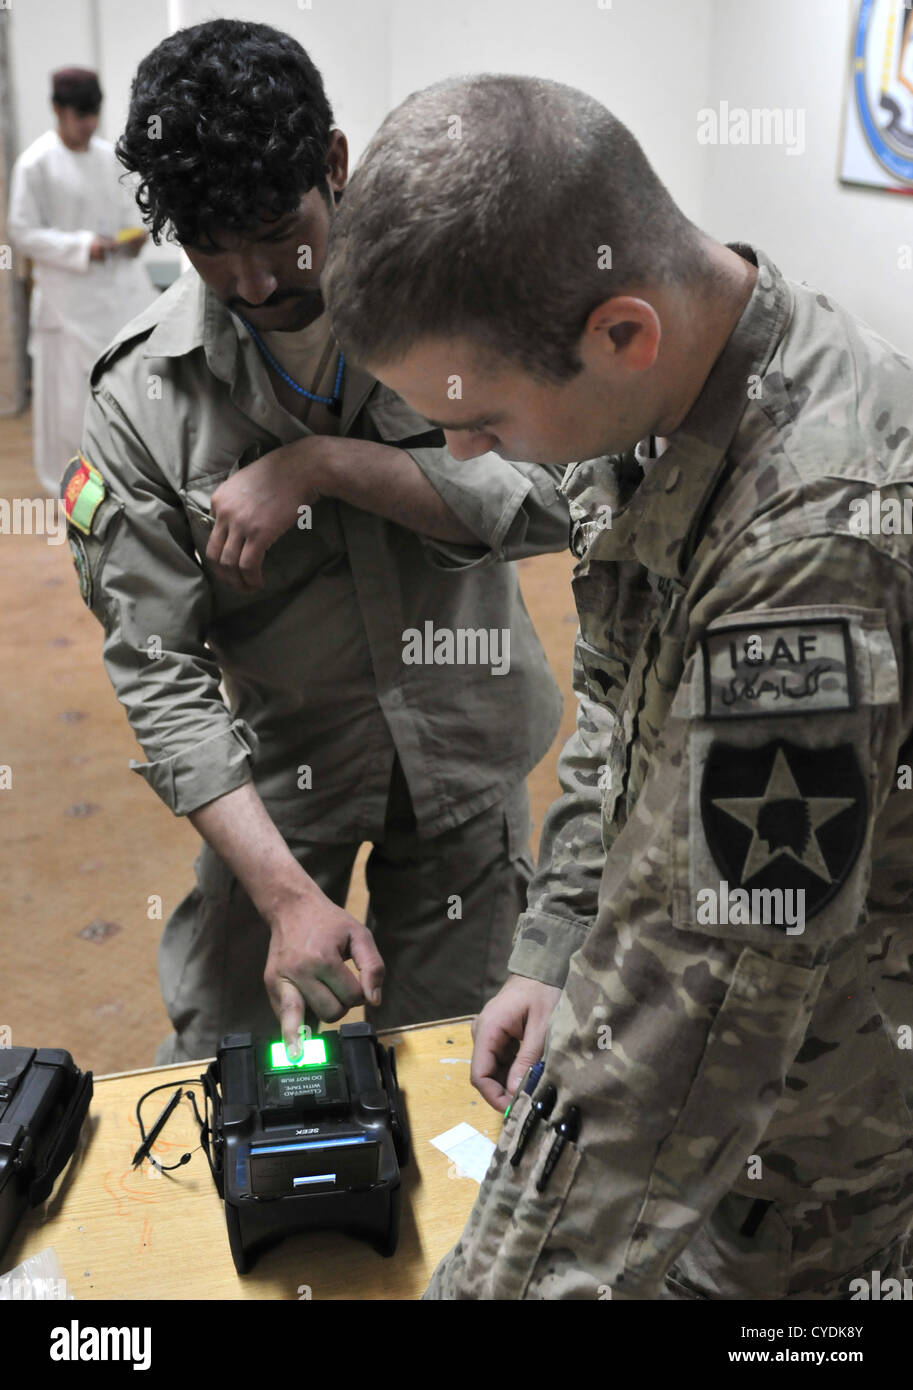 An Afghan Policeman has his fingerprints scanned under supervision of the US Air Force September 4, 2012 in Kandahar - Stock Image